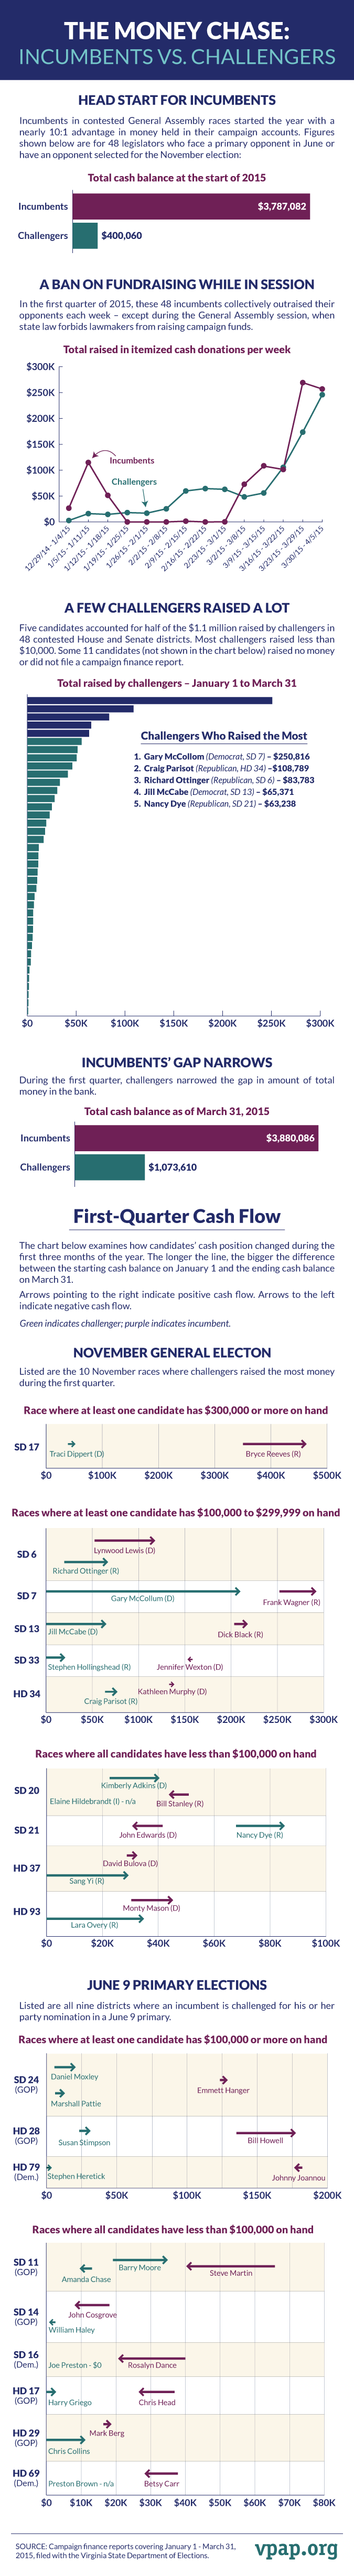 The Money Chase: Incumbents vs. Challengers